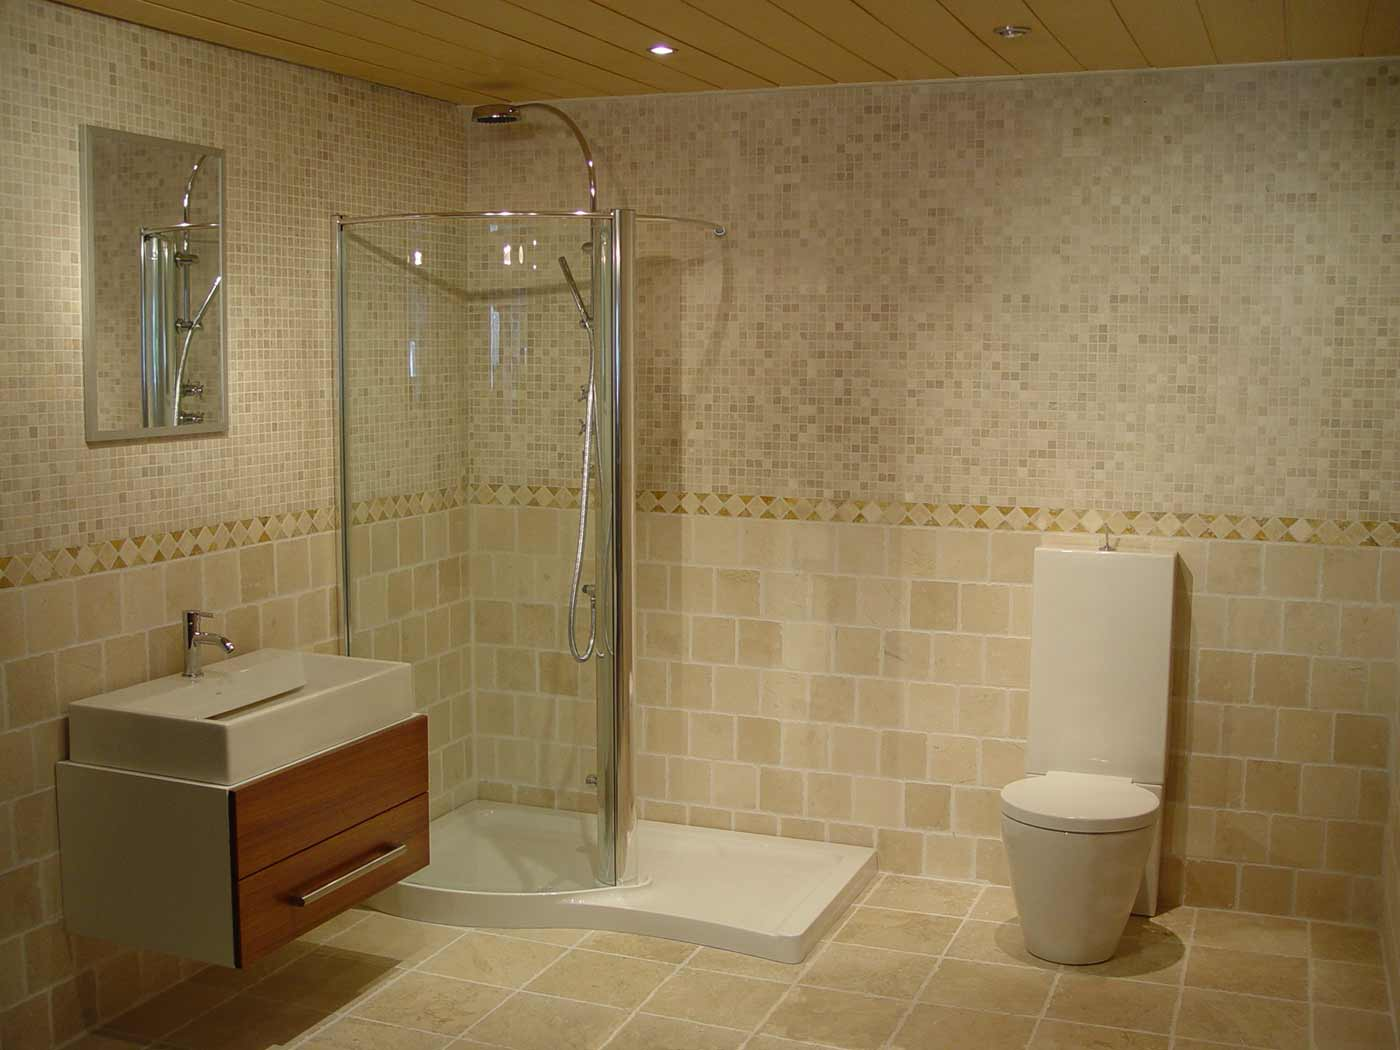 Wonderful Bathroom Design Tile Showers Ideas 1400 x 1050 · 83 kB · jpeg